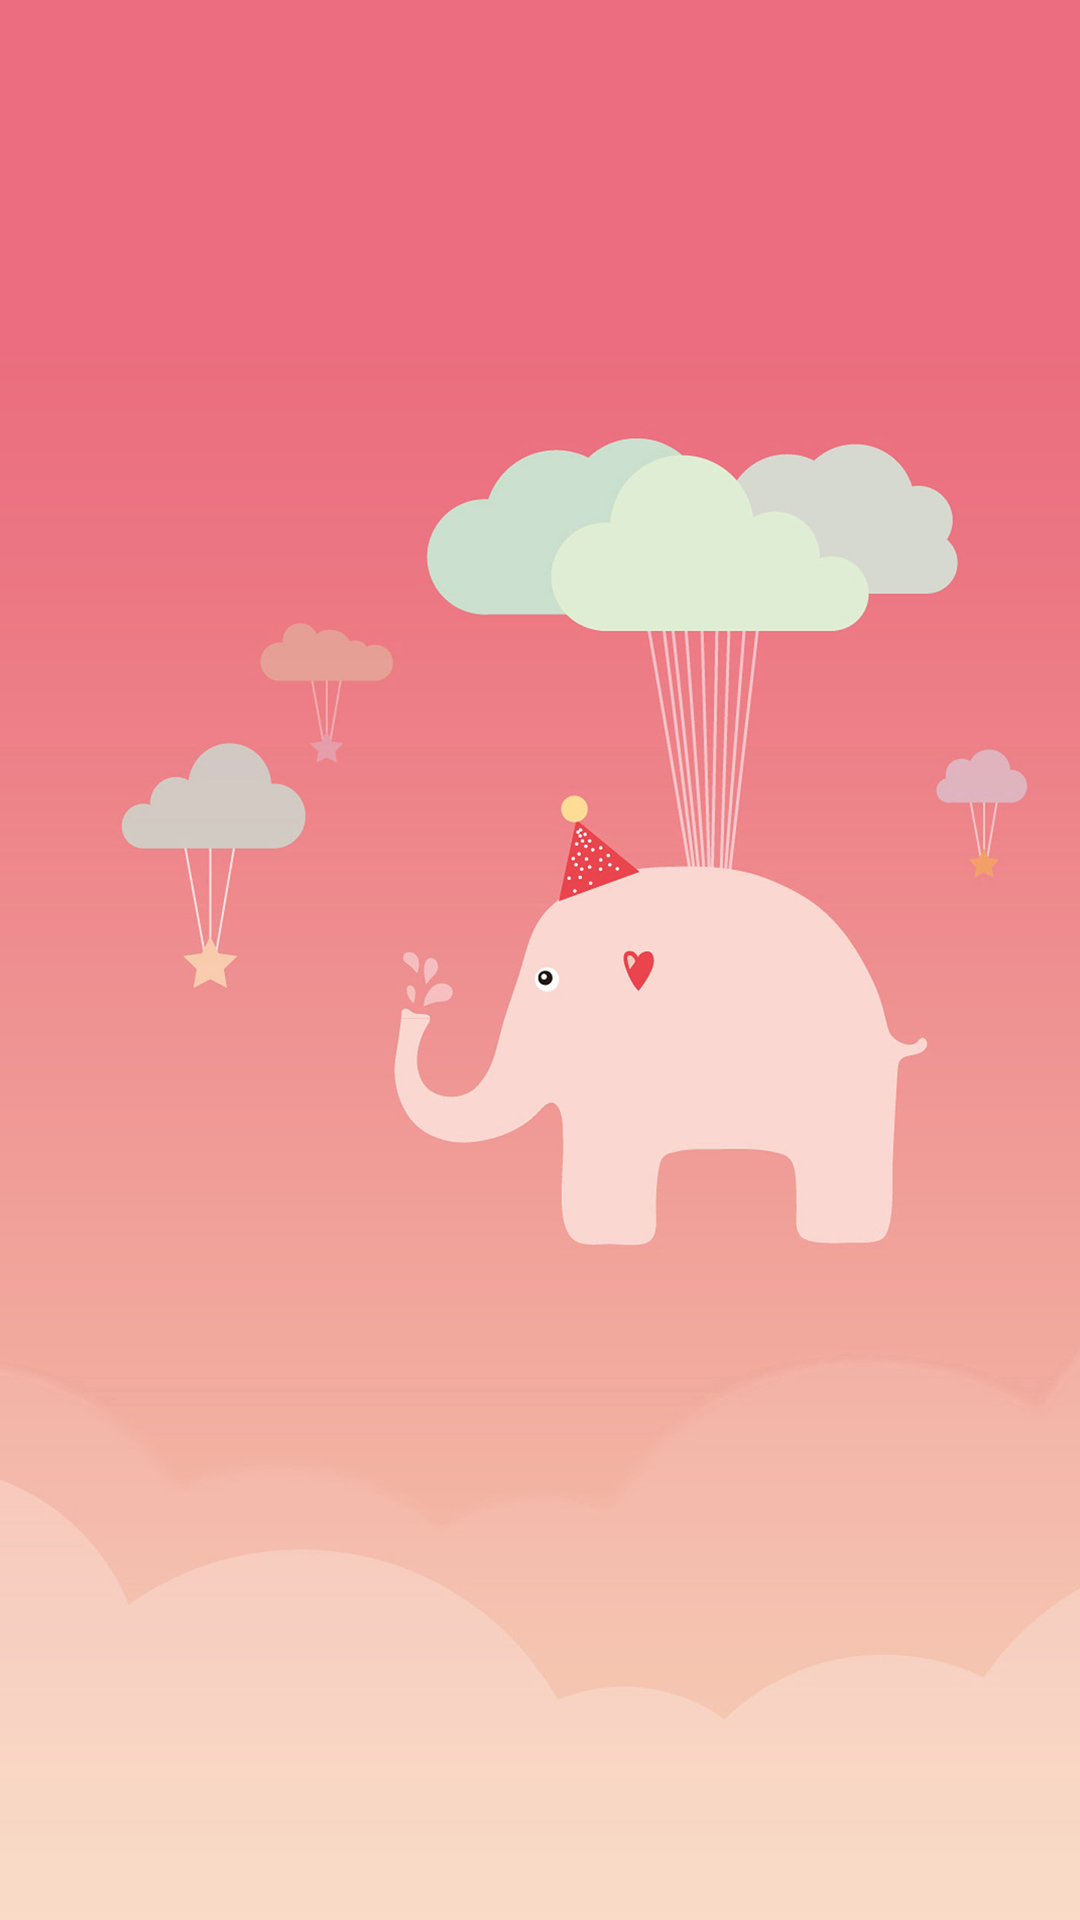 Free Download Cute Elephant Iphone 6 Wallpaper Download